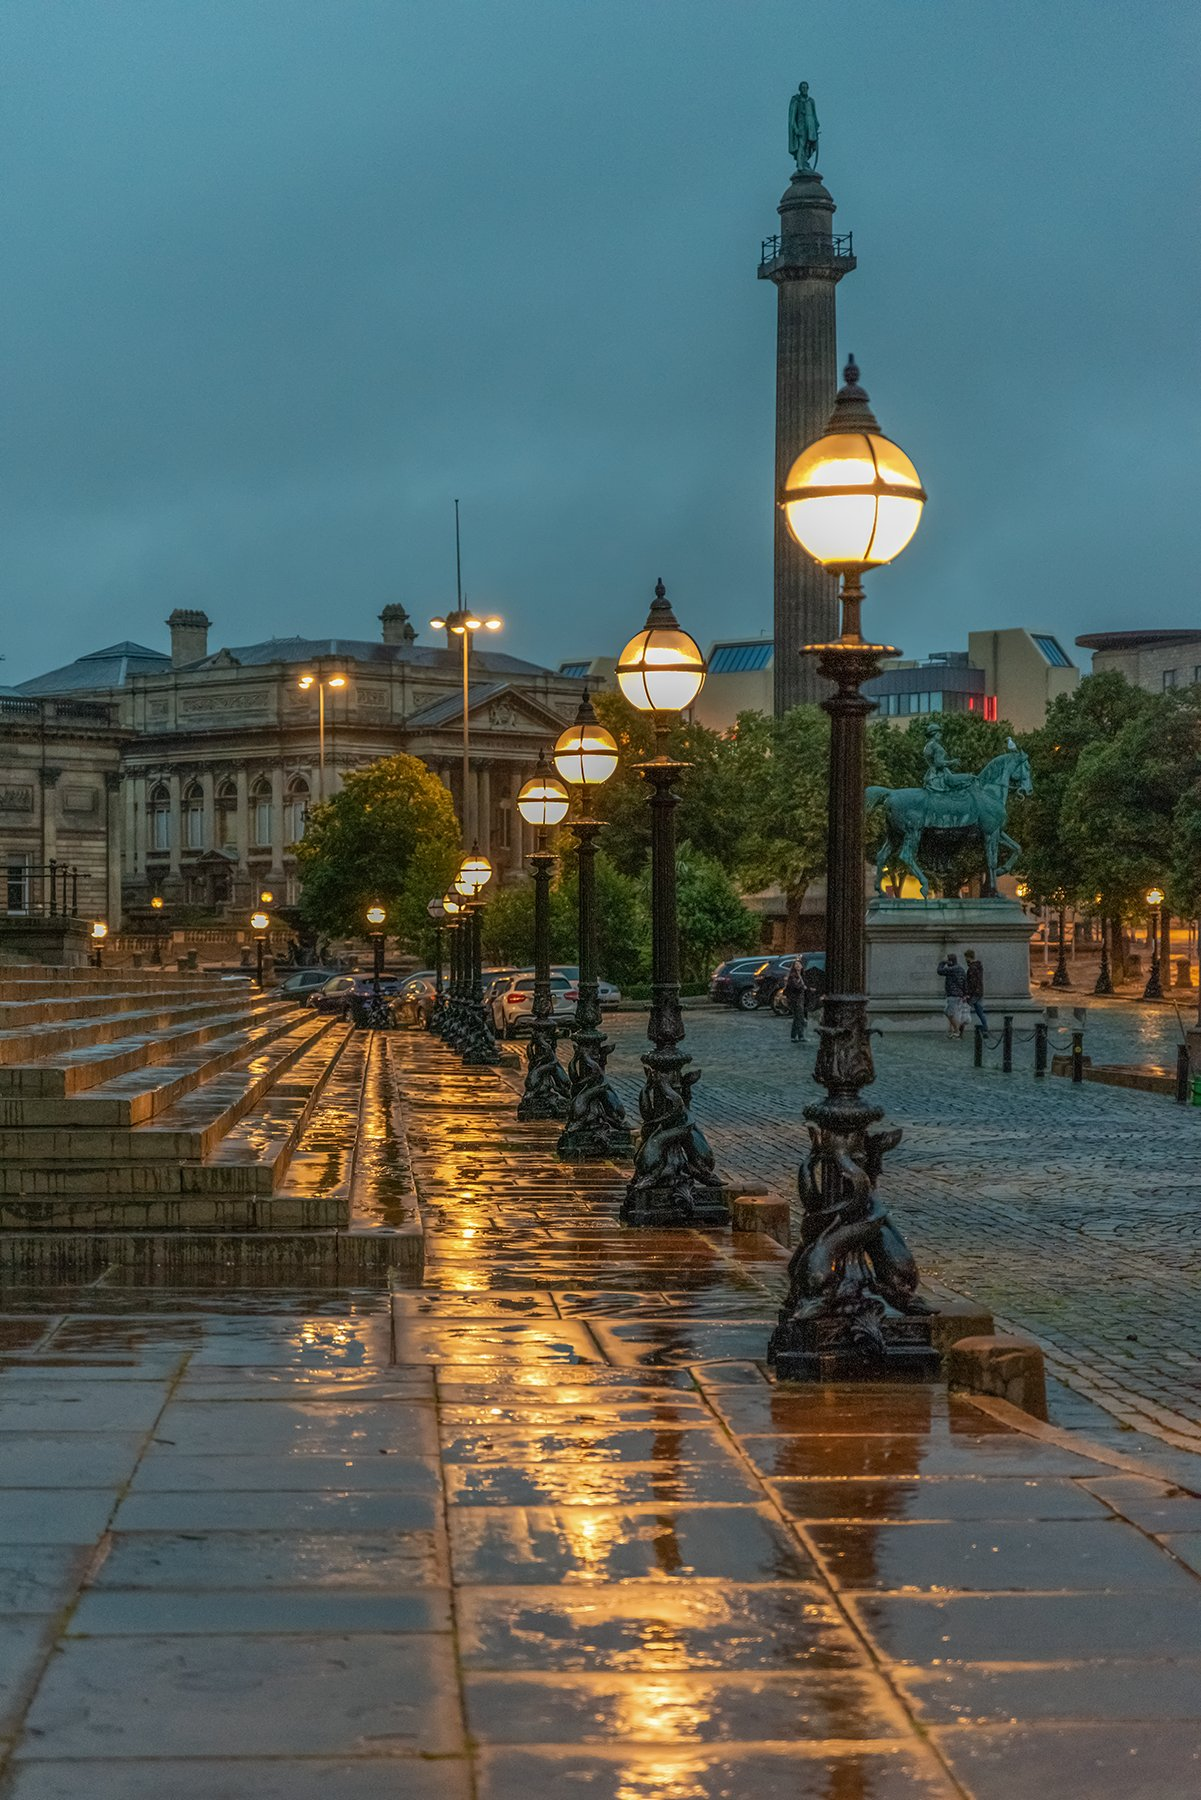 Dolphin lamp posts at night, St George's Plateau, Liverpool